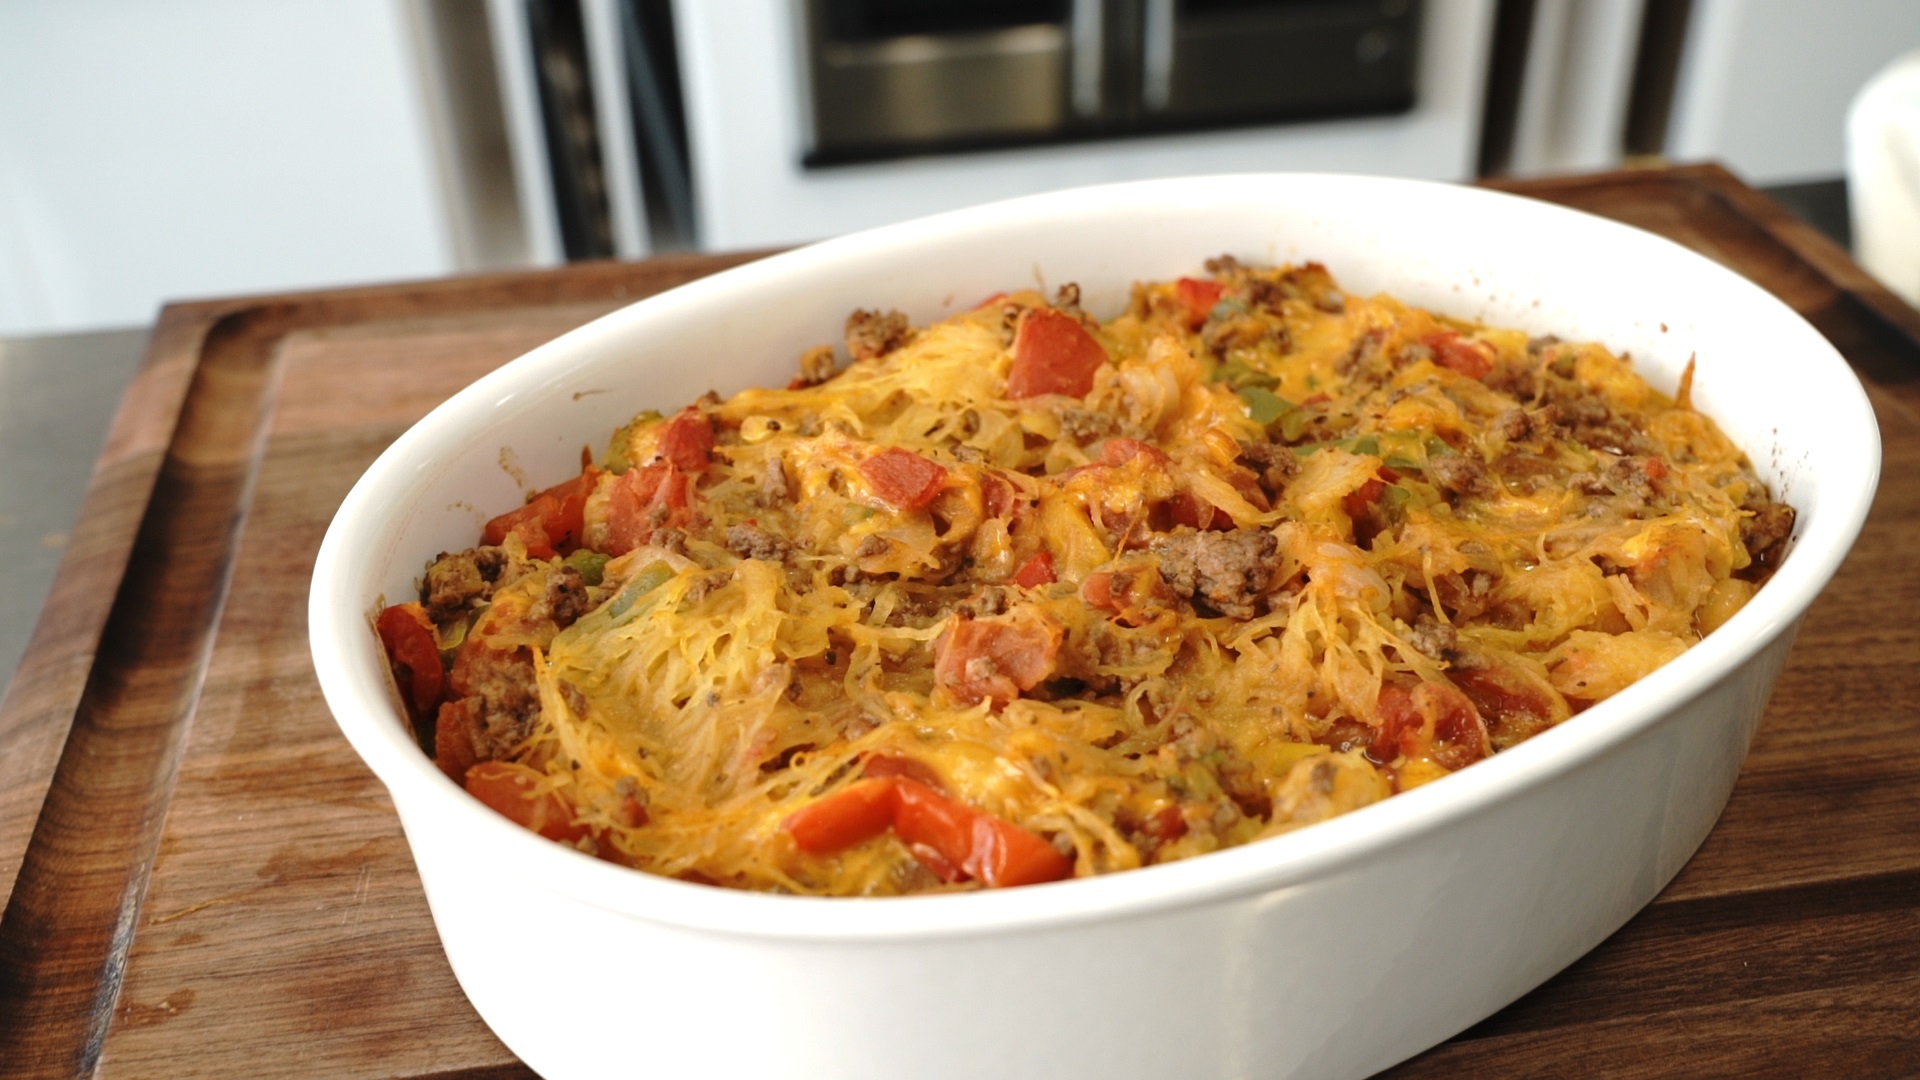 baked spaghetti squash with beef and veggies casserole